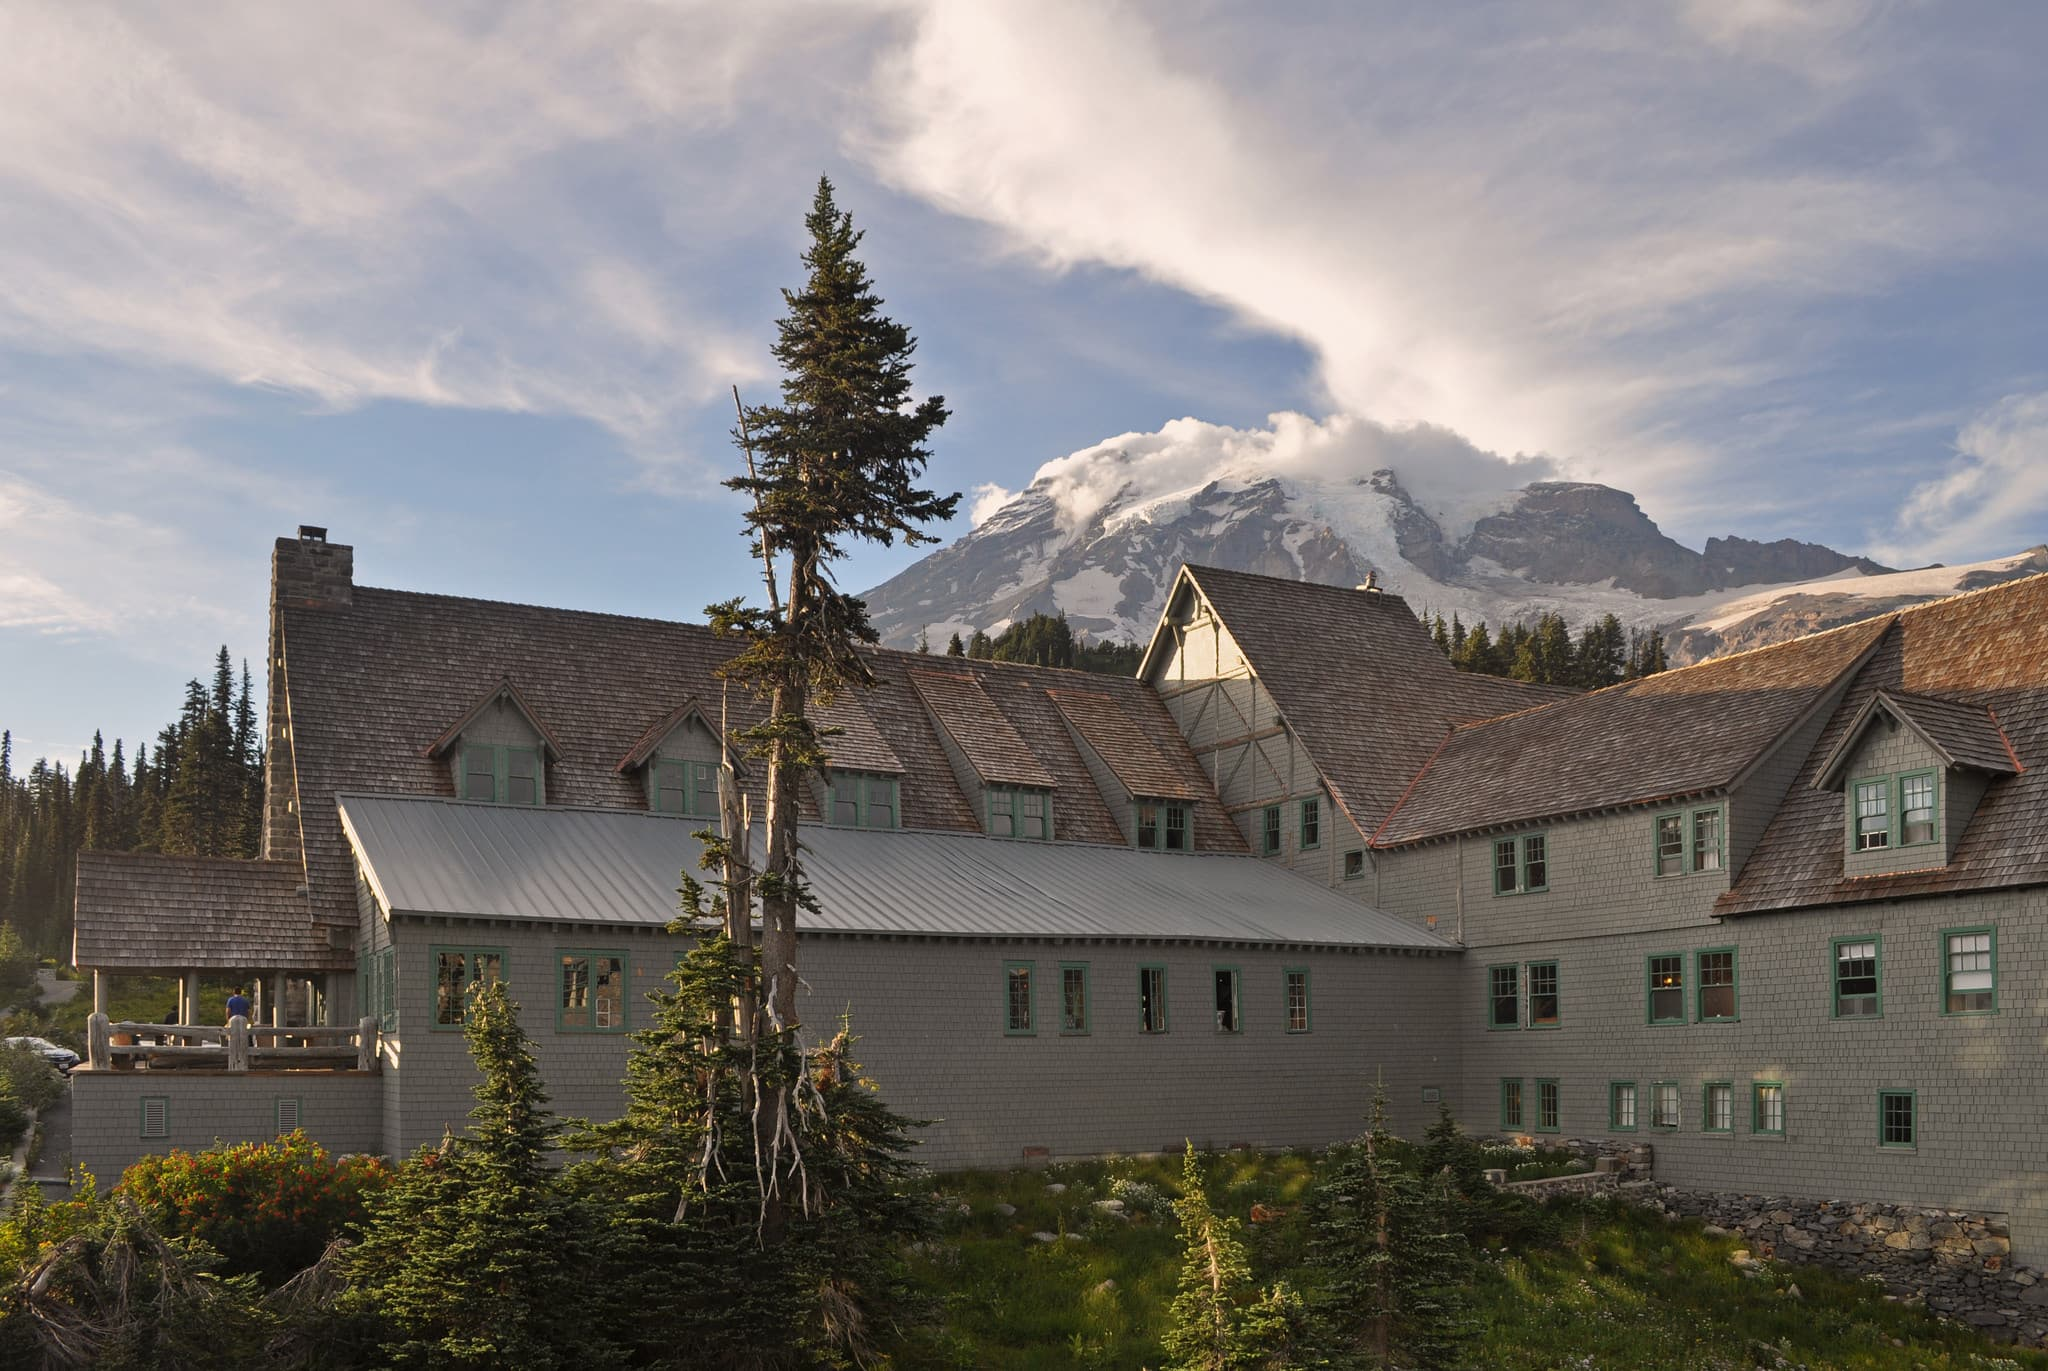 paradise inn national park lodge with mount rainier summit in the background